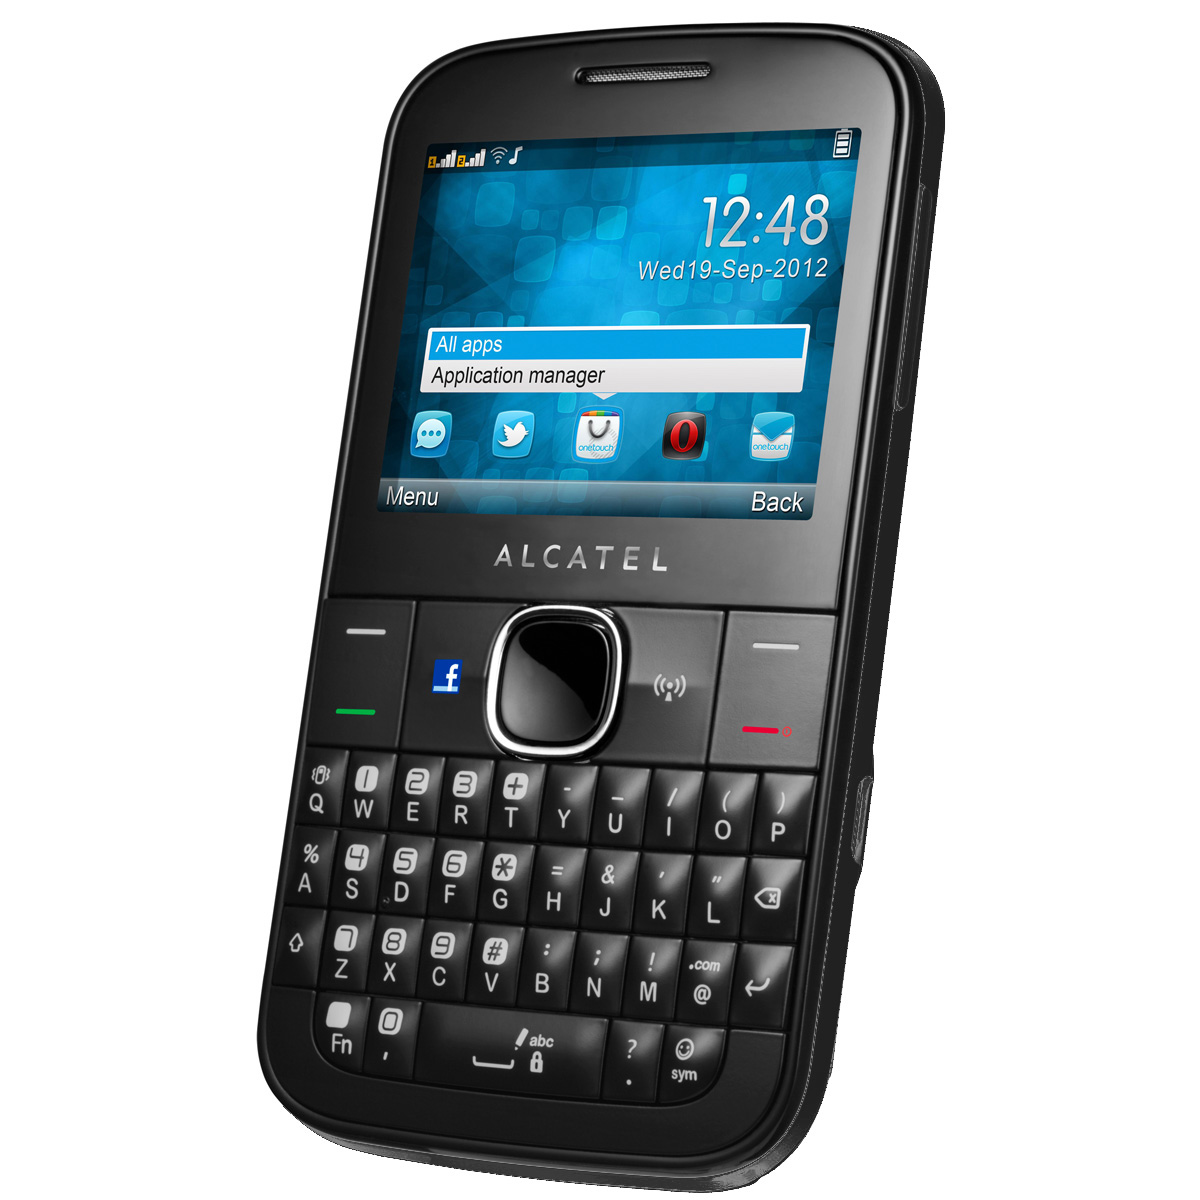 alcatel one touch 815d noir mobile smartphone alcatel sur. Black Bedroom Furniture Sets. Home Design Ideas